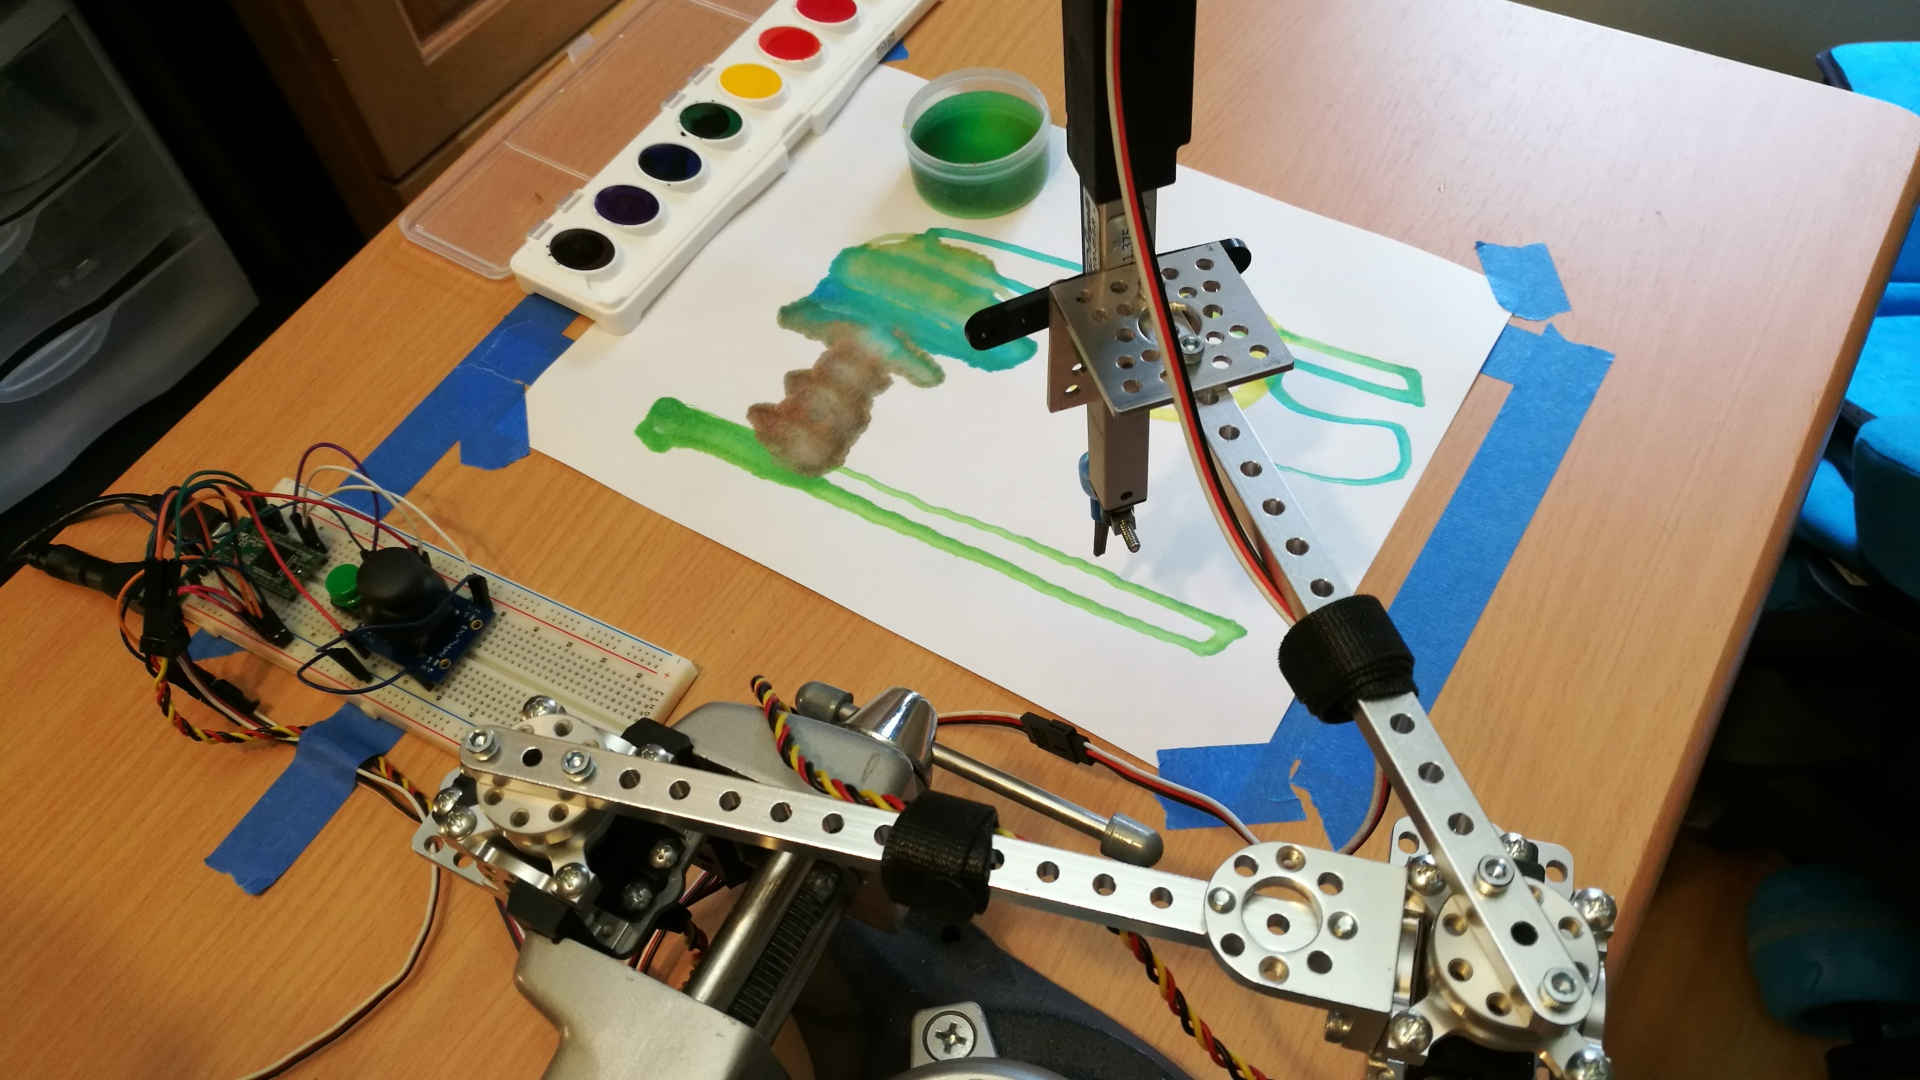 robotic painter with its painting